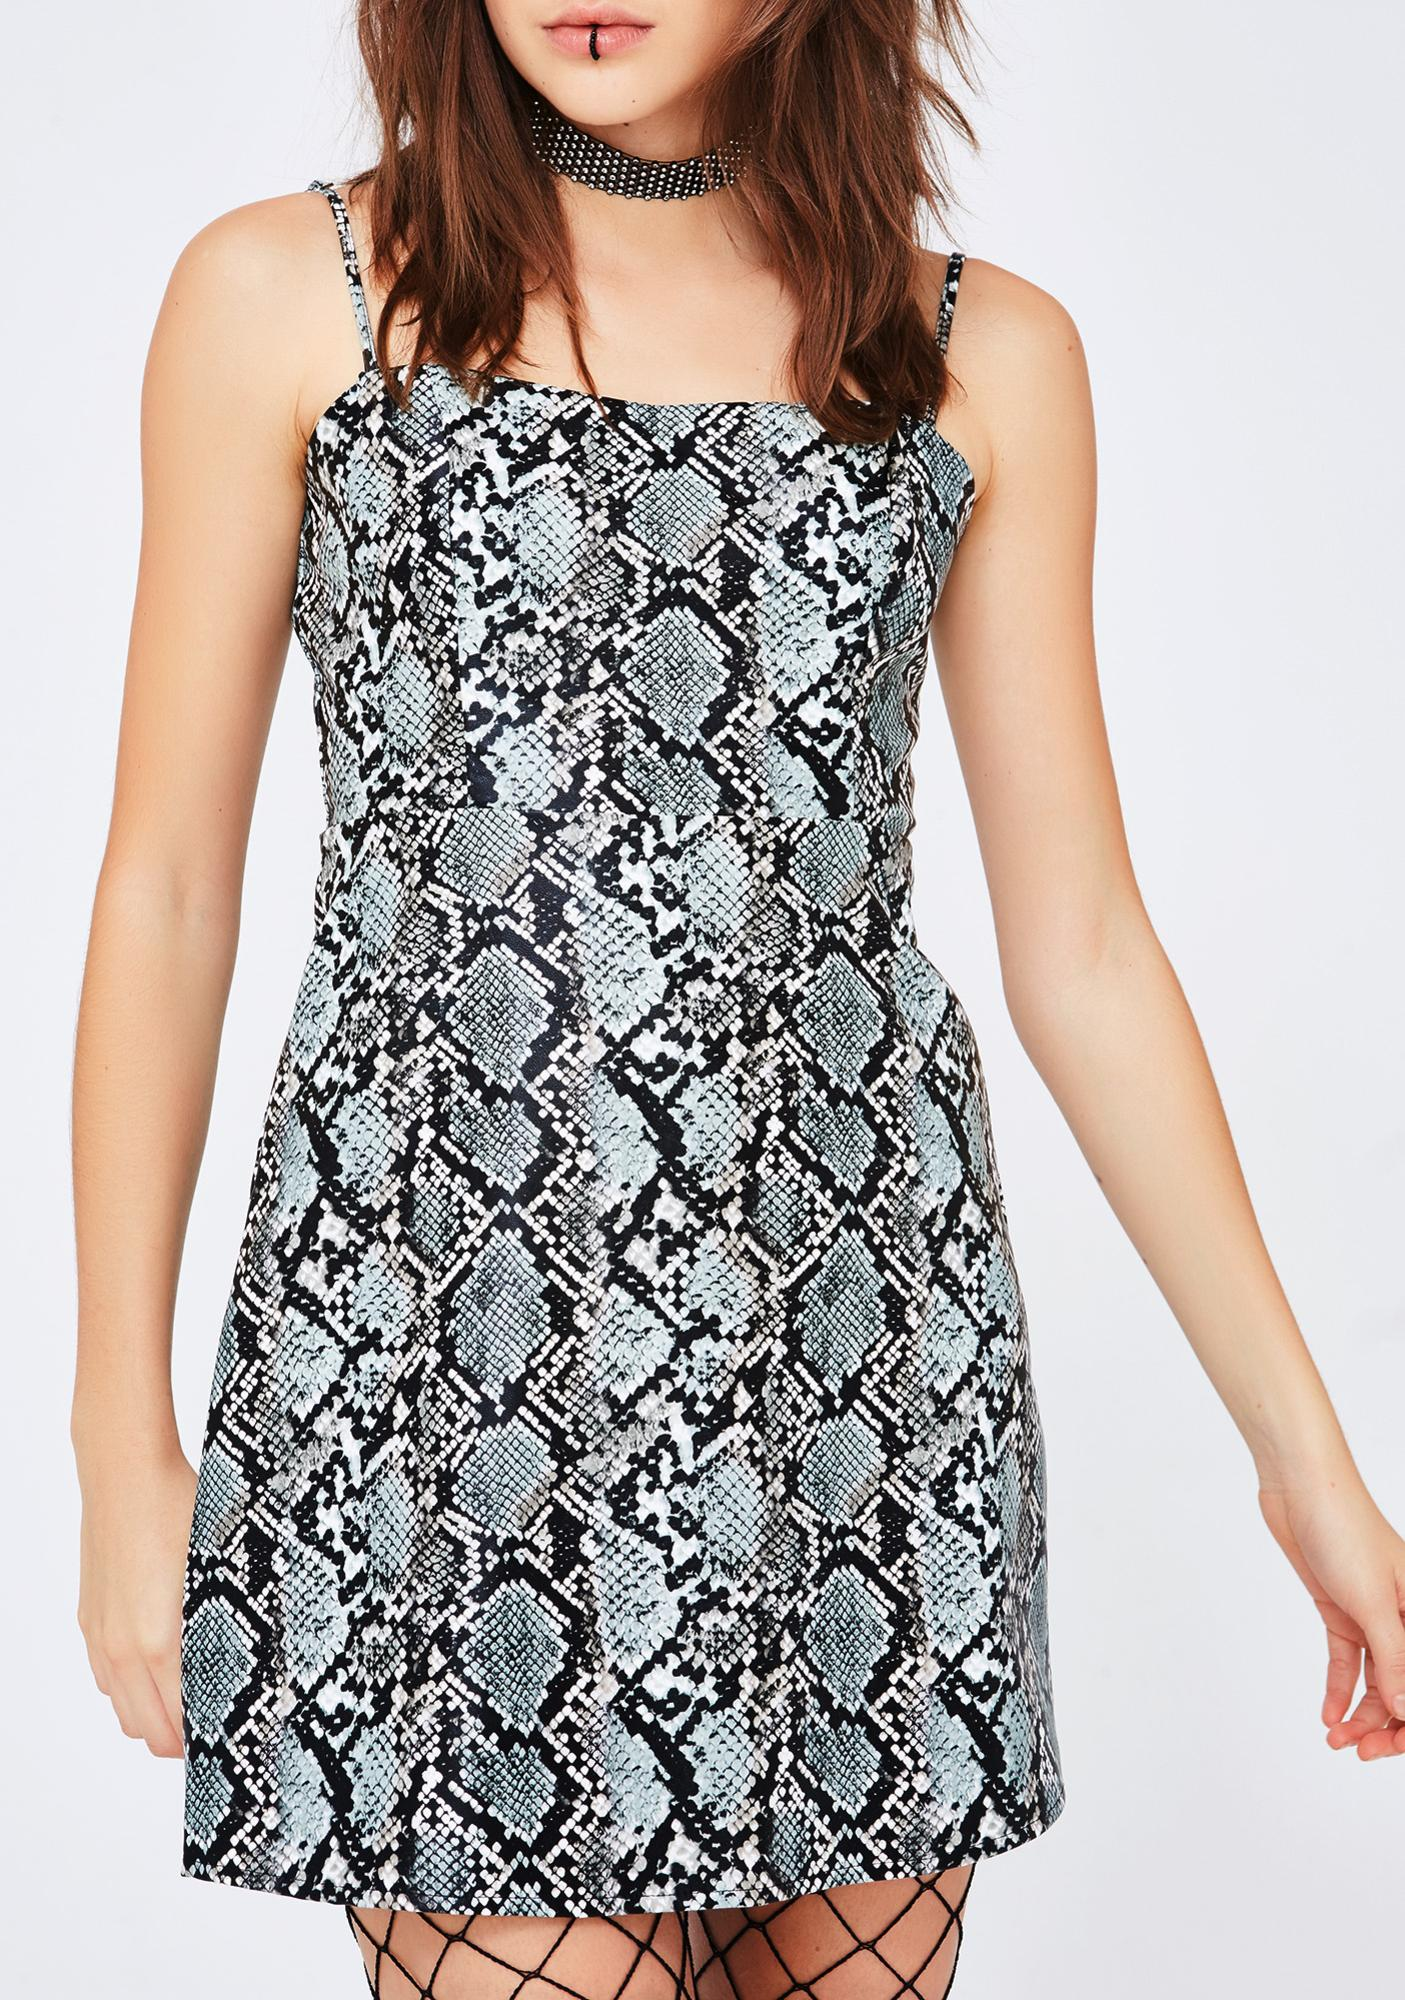 Slither Hither Mini Dress